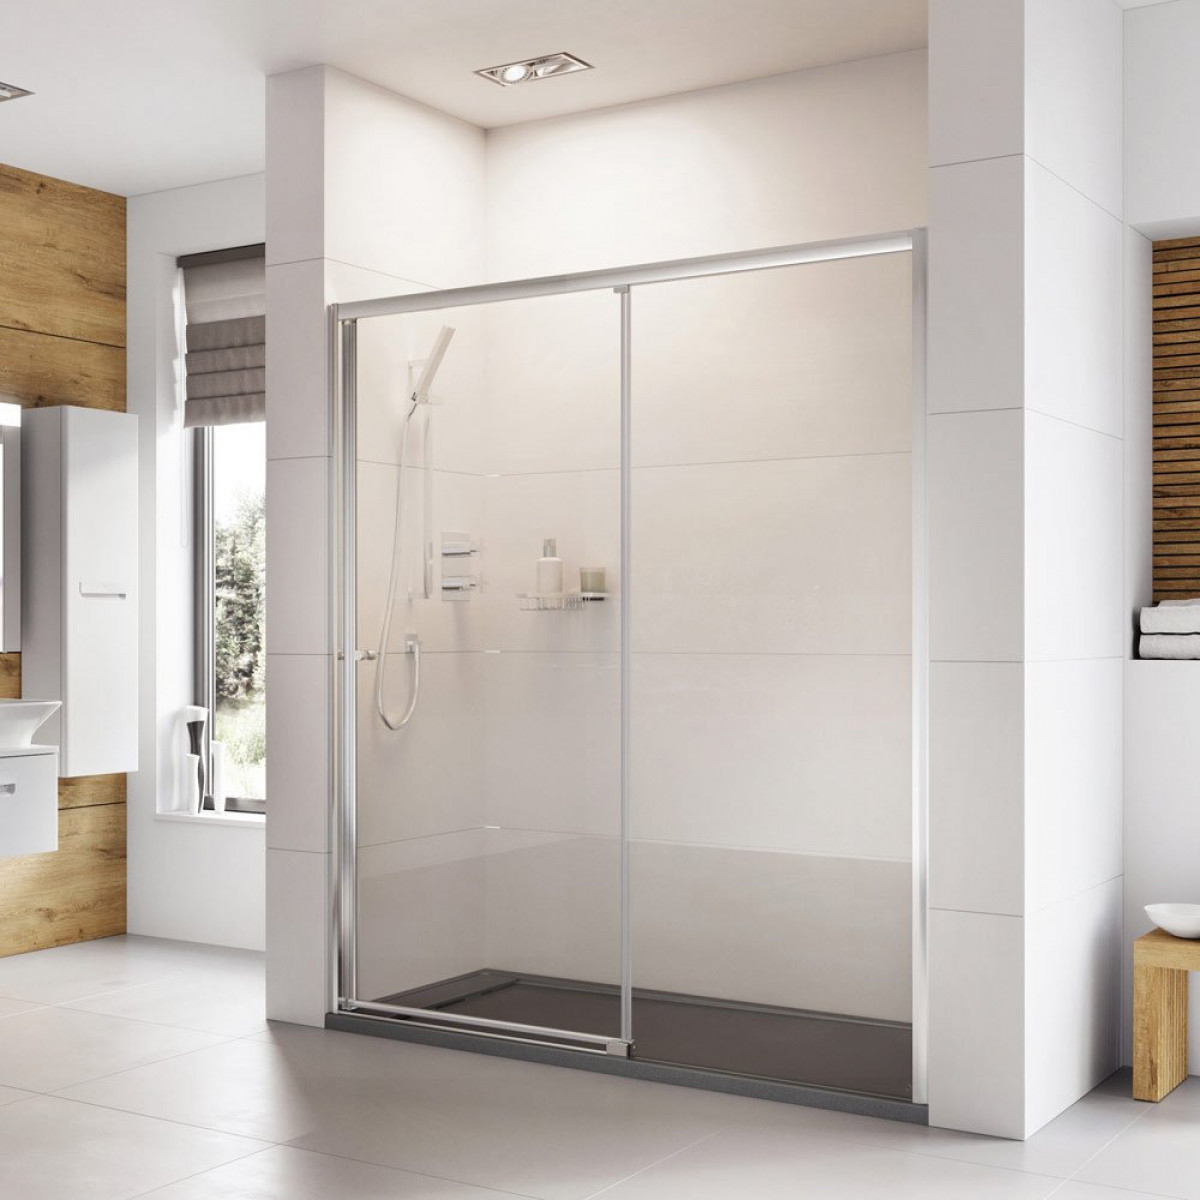 Roman Haven 1100mm Level Access Left Hand Sliding Shower